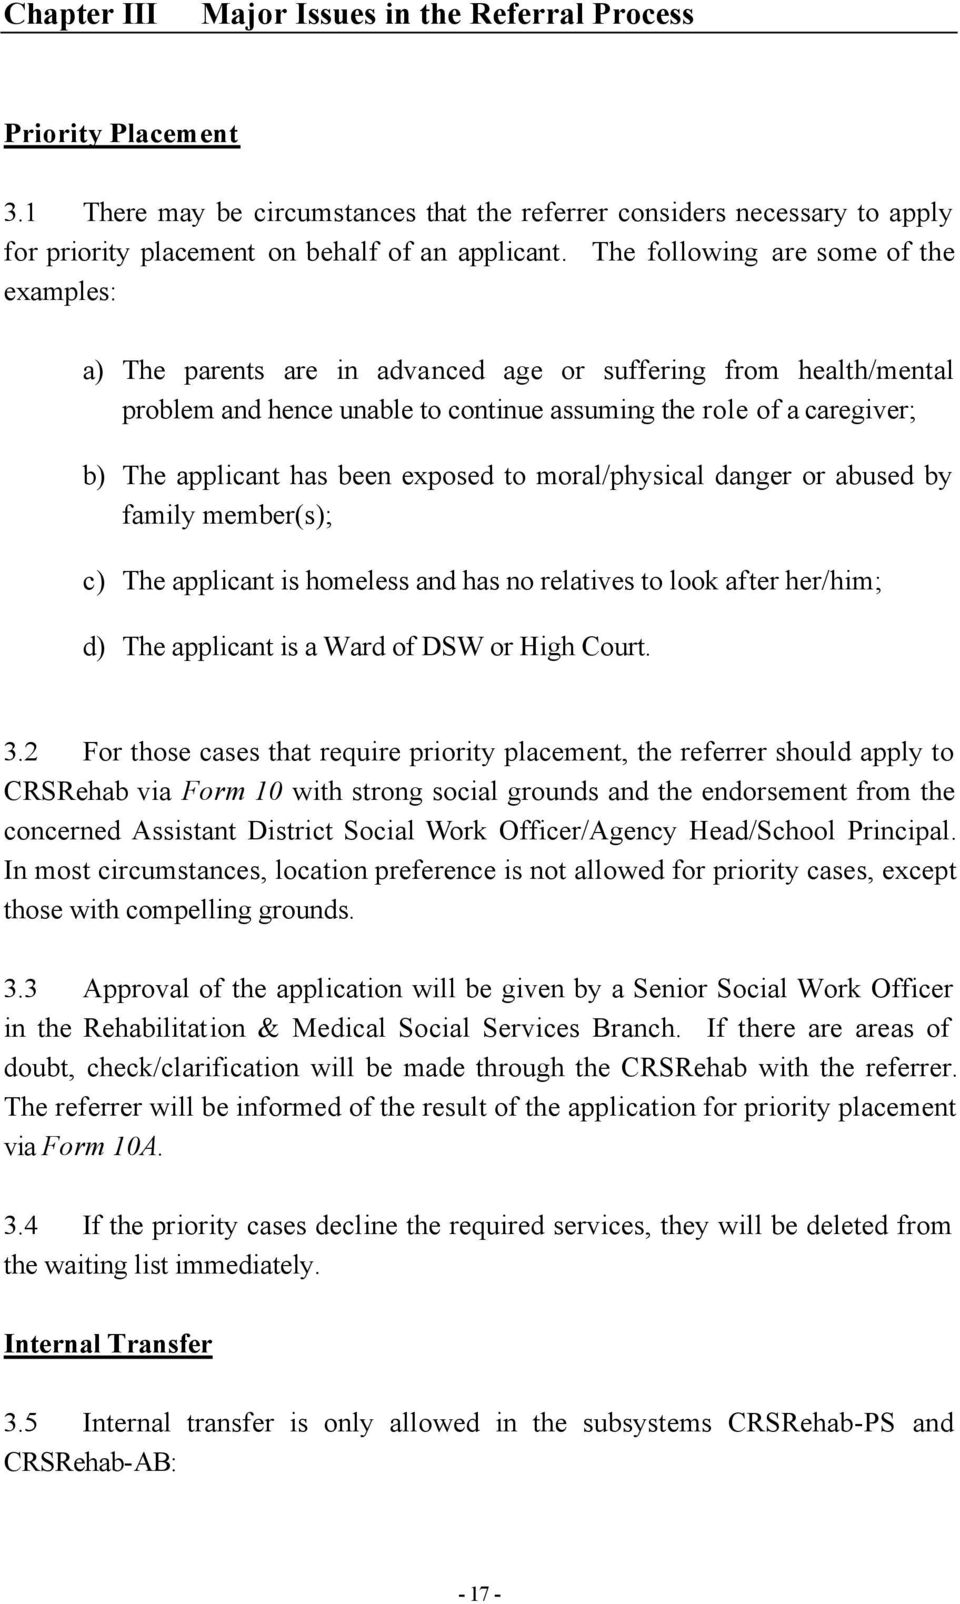 been exposed to moral/physical danger or abused by family member(s); c) The applicant is homeless and has no relatives to look after her/him; d) The applicant is a Ward of DSW or High Court. 3.